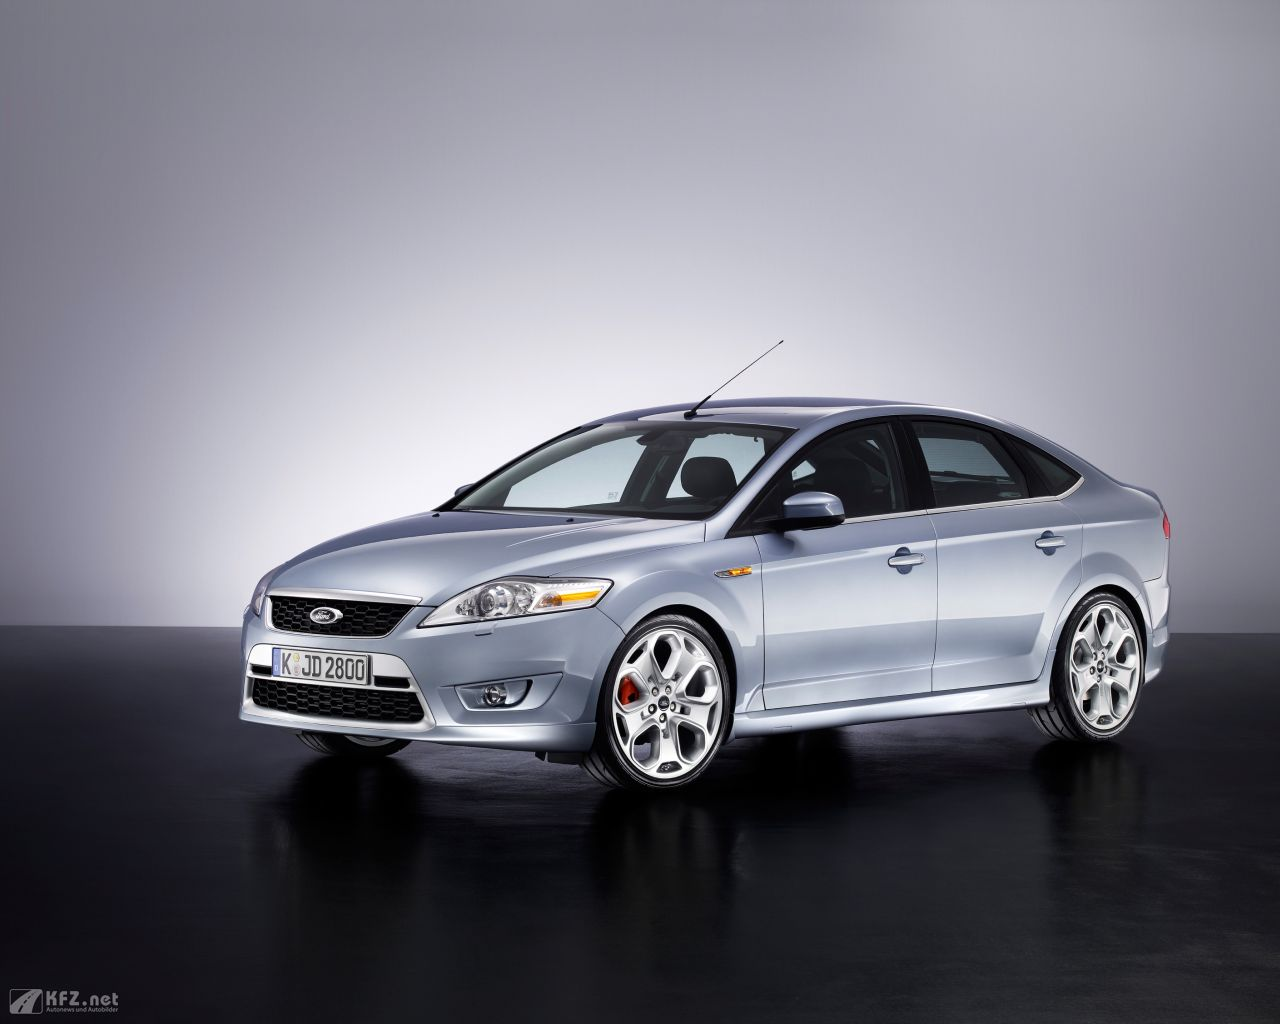 ford-mondeo-1280x1024-11